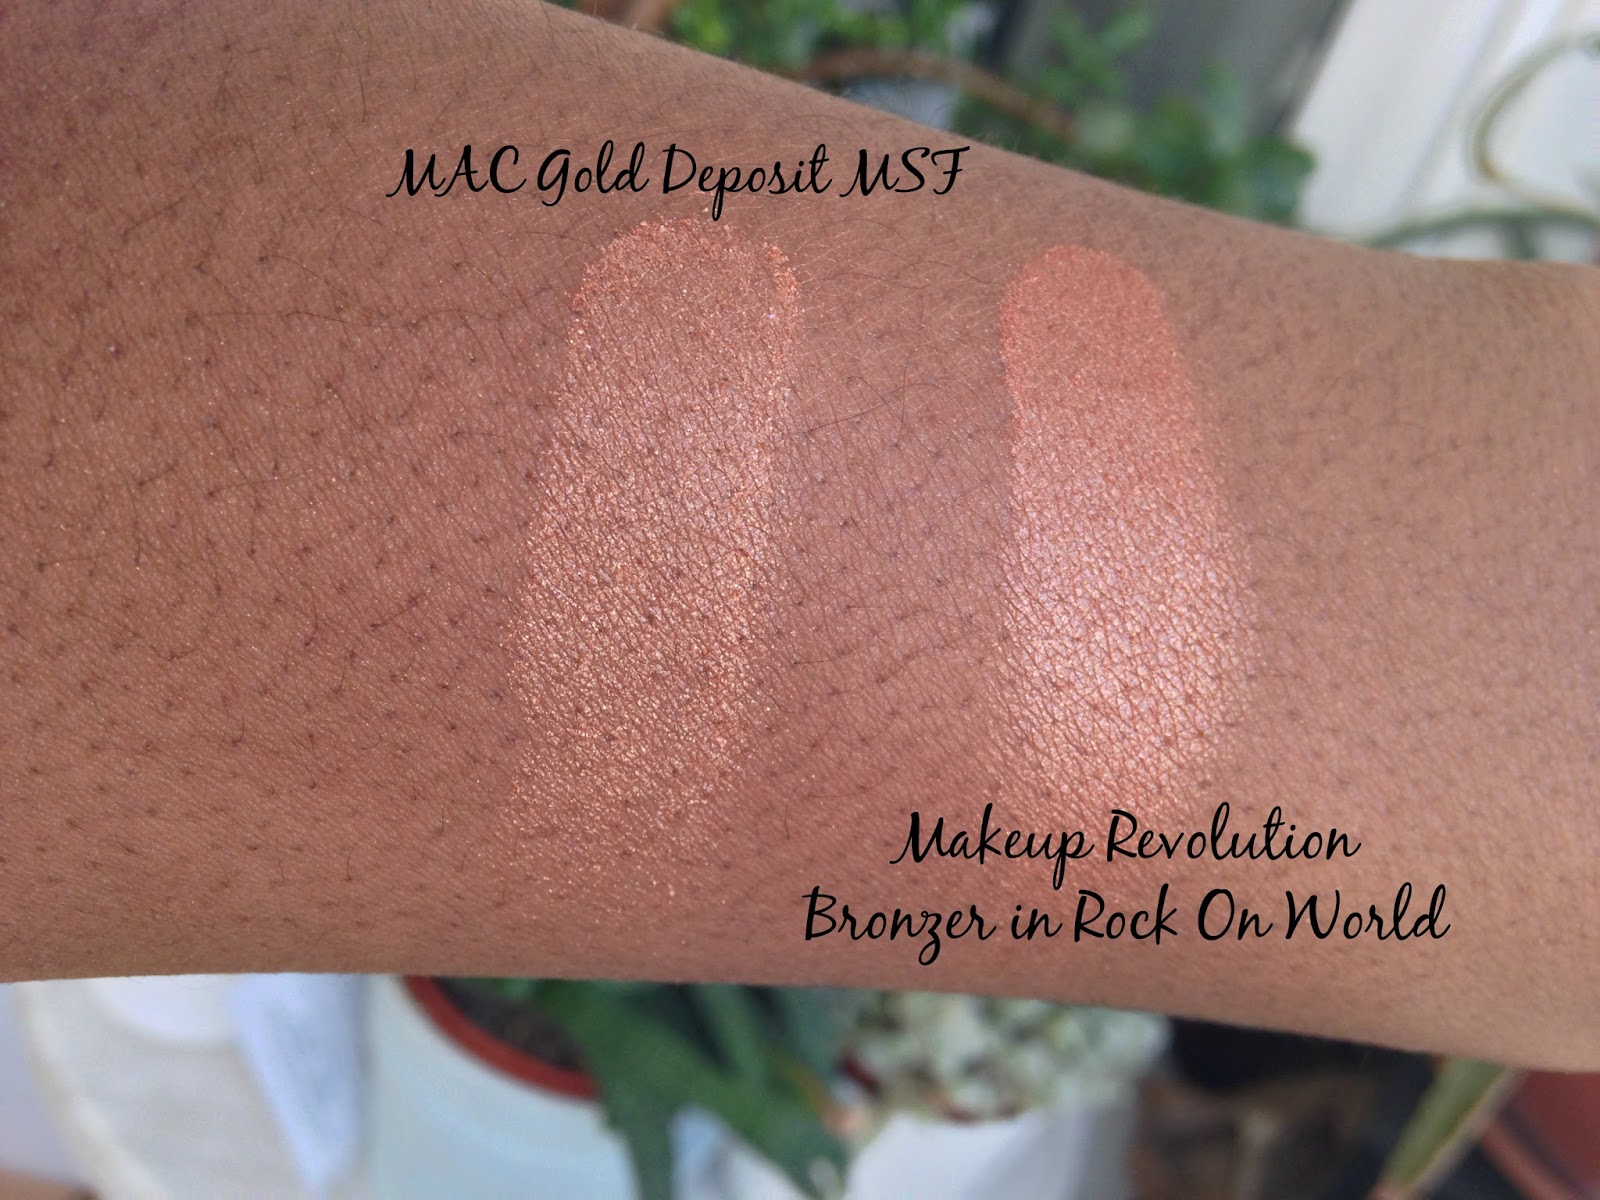 Makeup Revolution NC50 Beauty Blogger Black Beauty Discoveriesofself Gold Deposit MSF Rock on World Bronzer